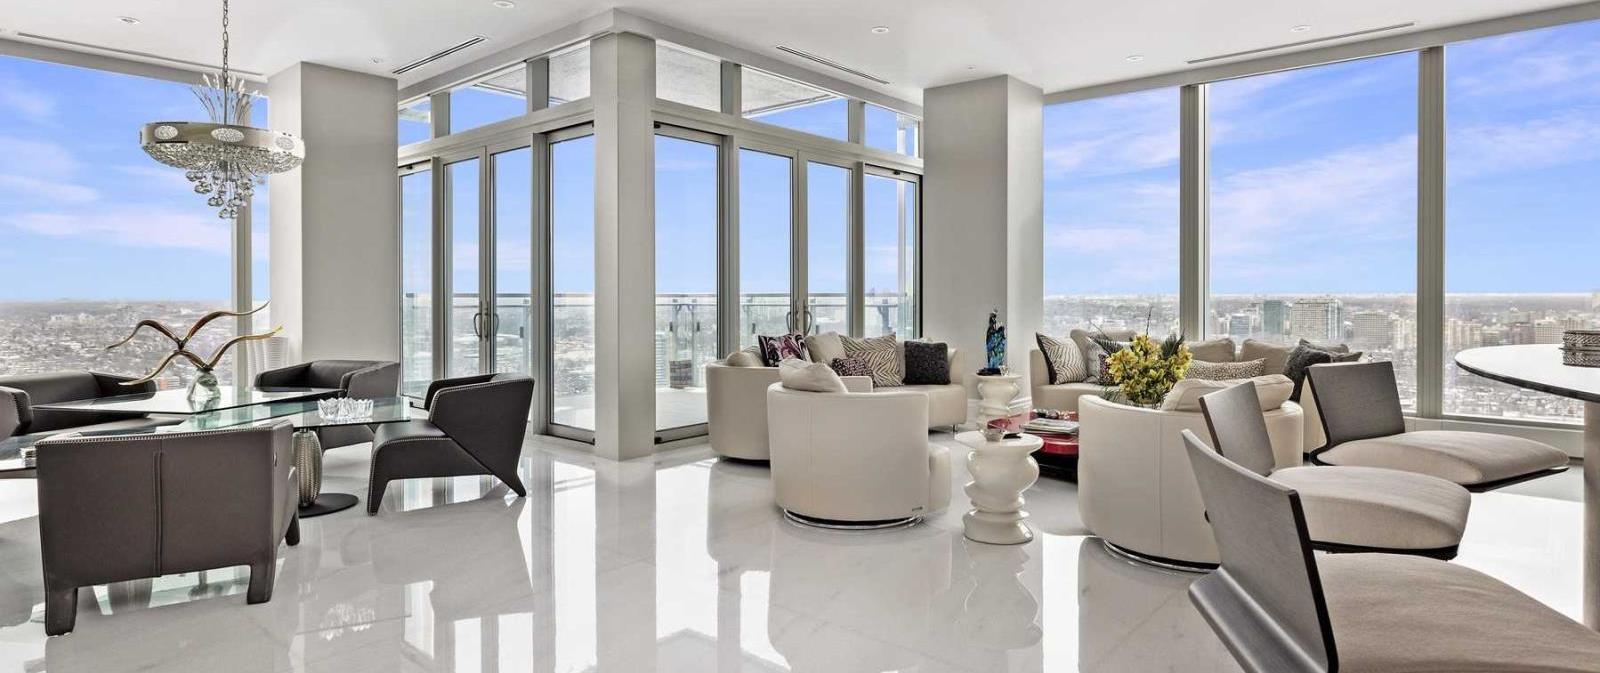 The 5 Most Expensive Condos Sold in Toronto in the Past Month